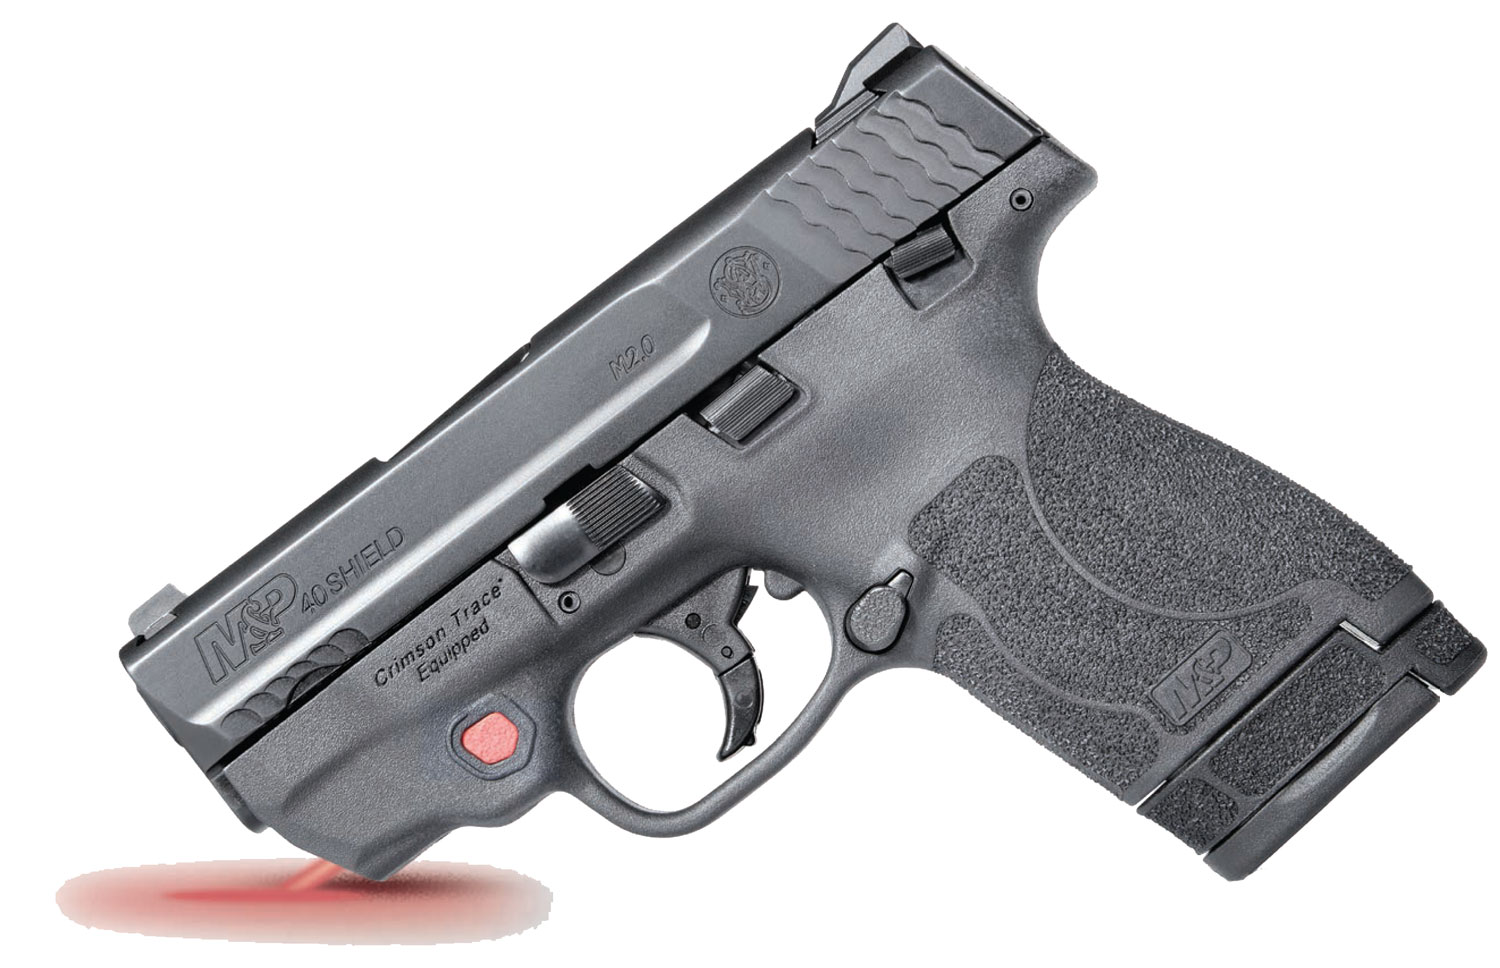 Smith & Wesson 11672 M&P 40 Shield M2.0 with Crimson Trace Red Laser Double 40 Smith & Wesson (S&W) 3.1